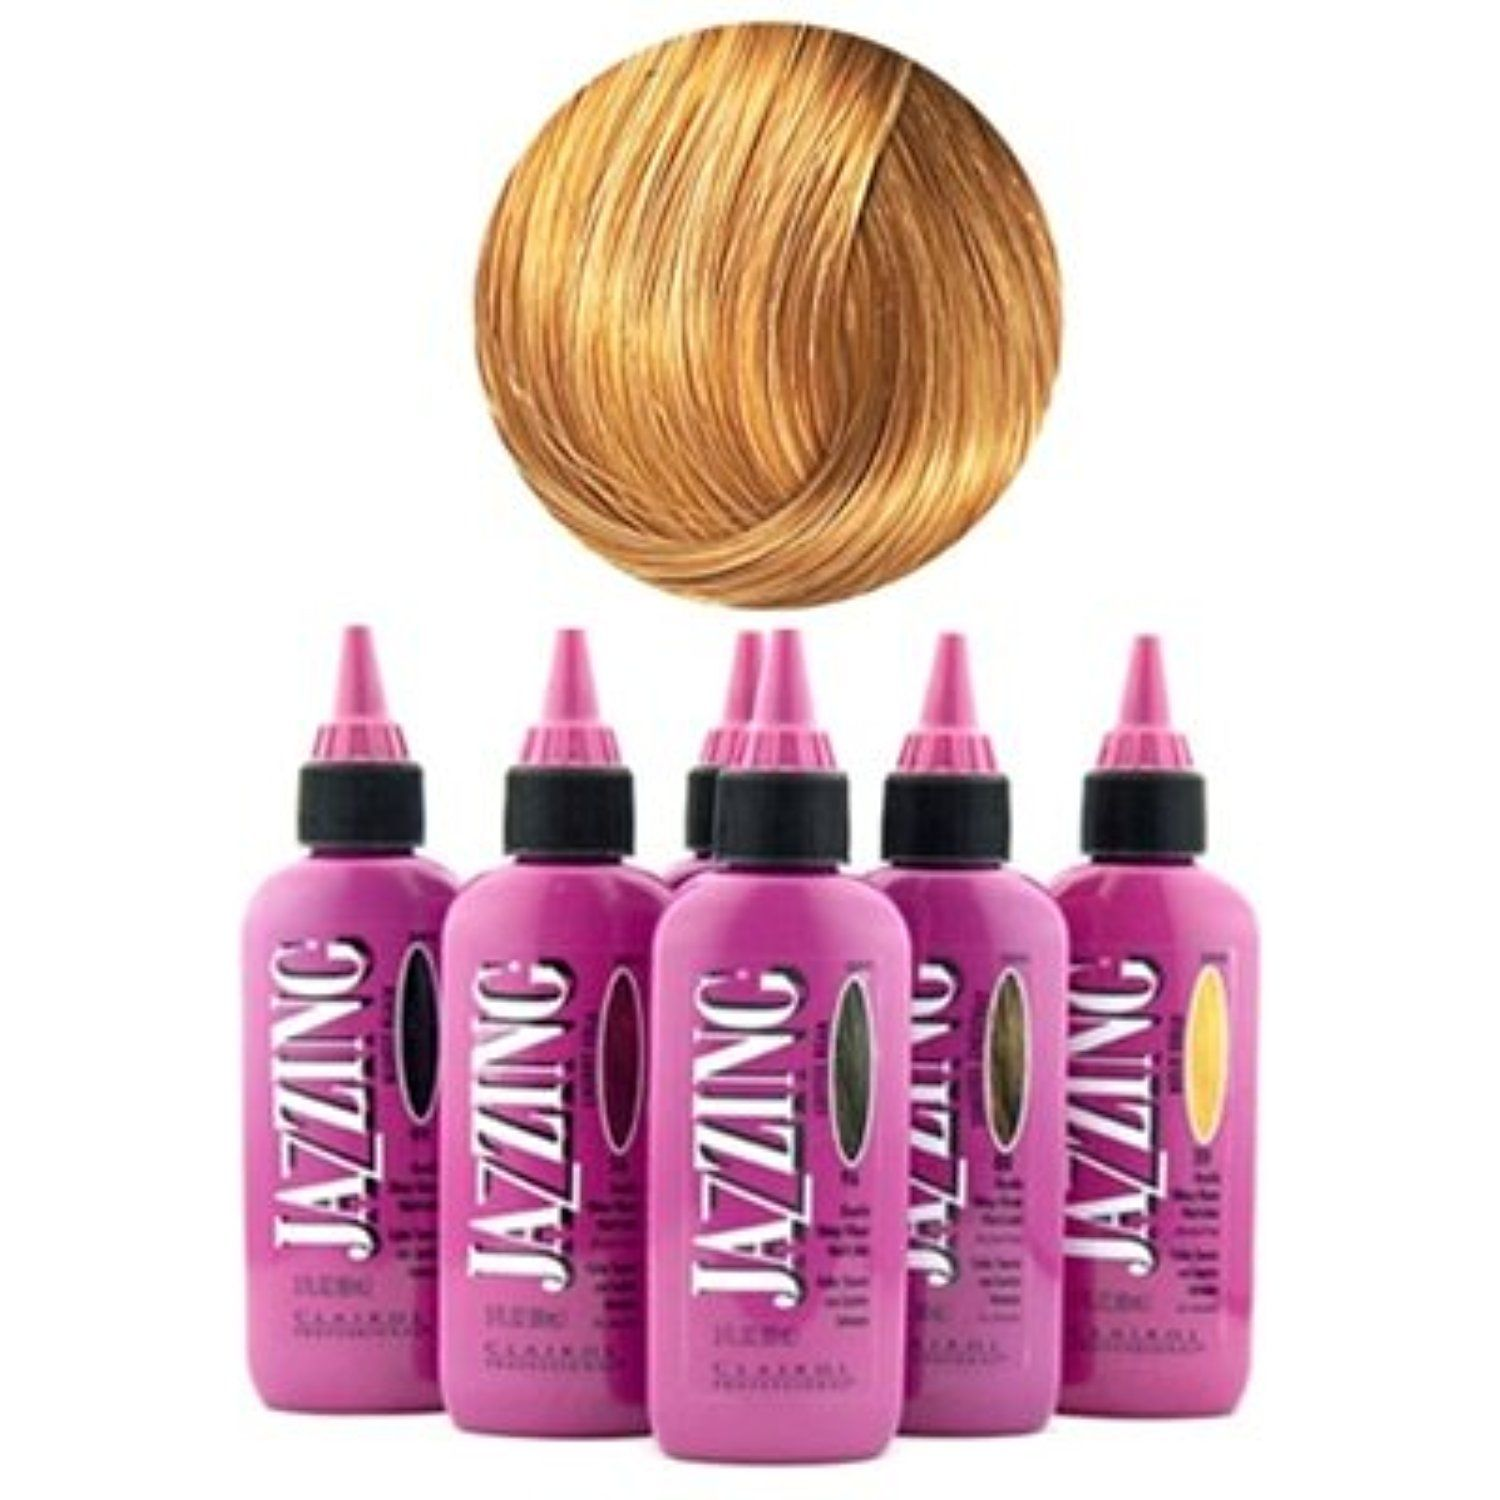 Clairol Jazzing Gentle Temporary Semi Permanent Hair Color